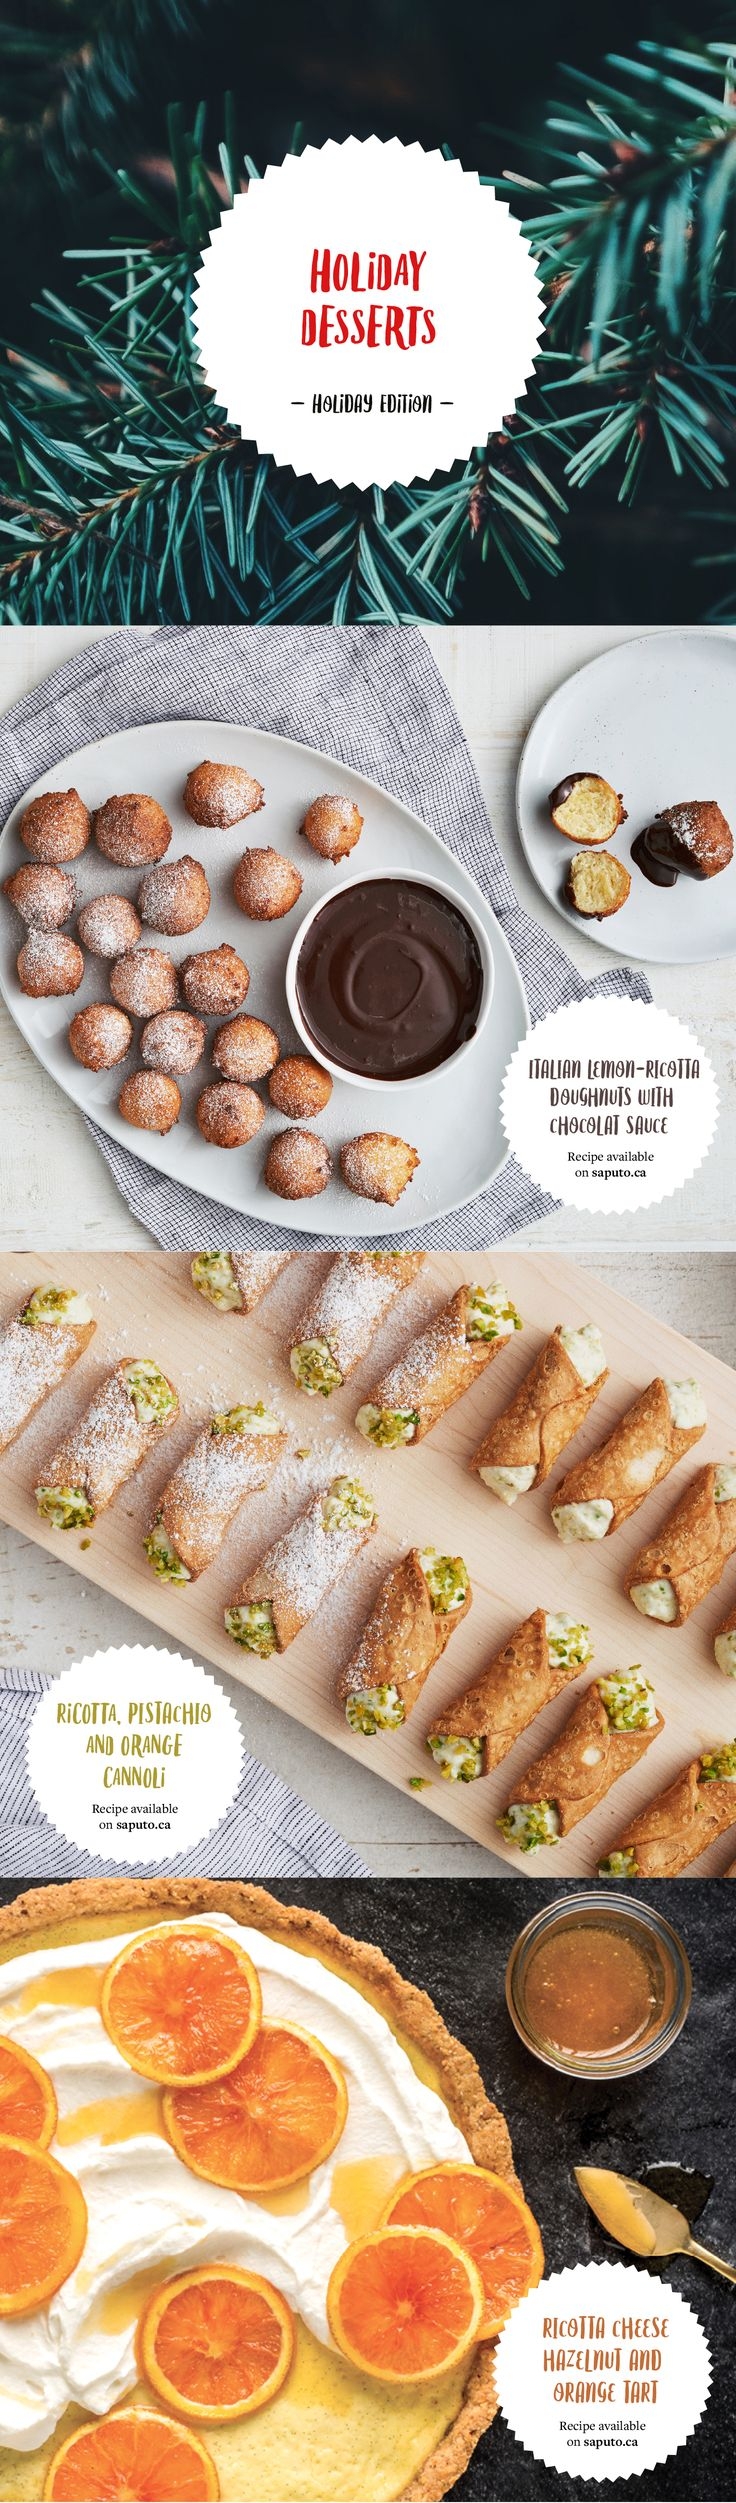 INGREDIENTS BY SAPUTO | Find the perfect final touch to your Christmas dinner with our vast selection of holiday dessert recipes. Cakes, gelato, donuts, pies … endless ideas await you!